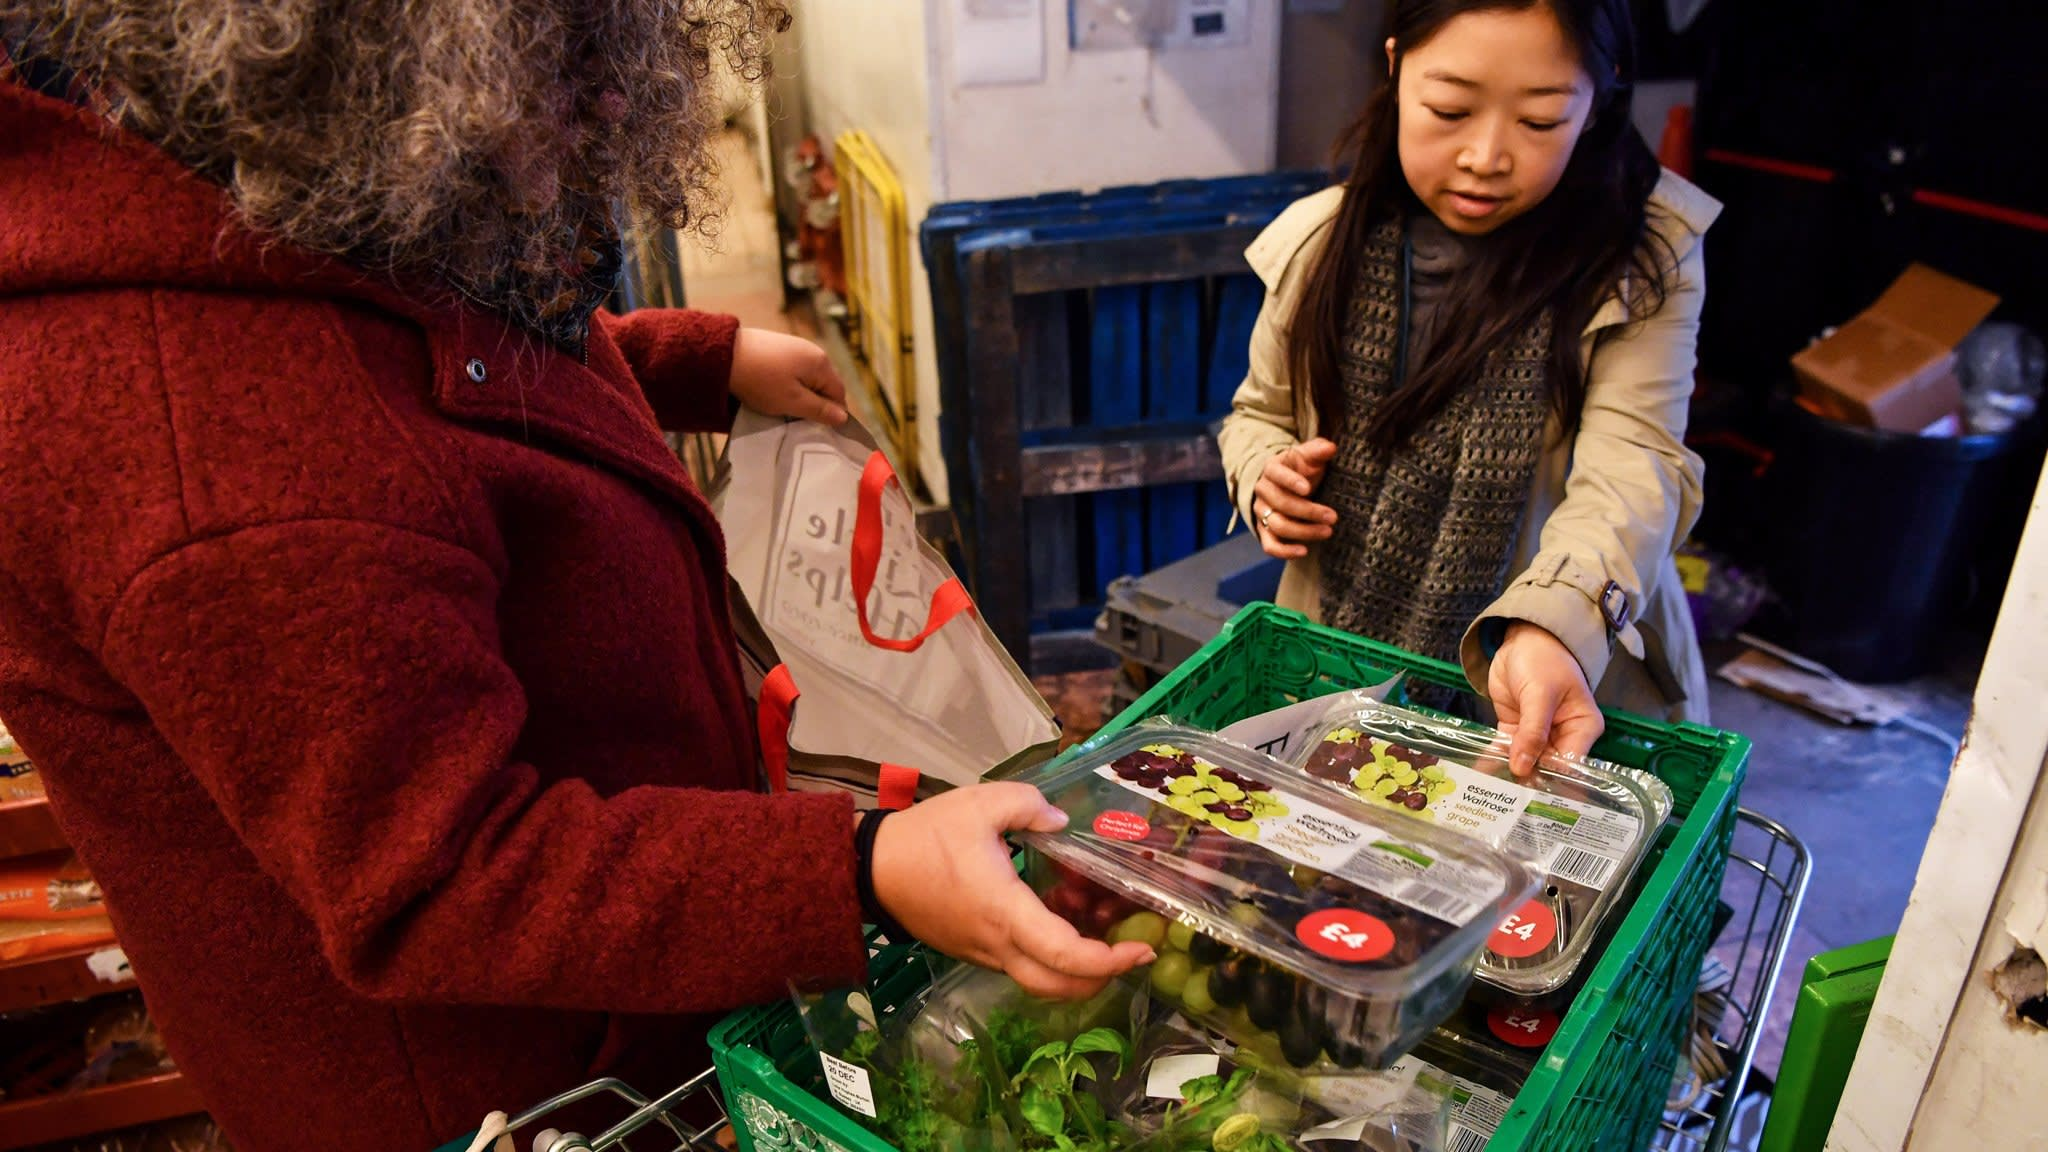 Retailers, distributors and growers struggle to curb food waste | Financial Times